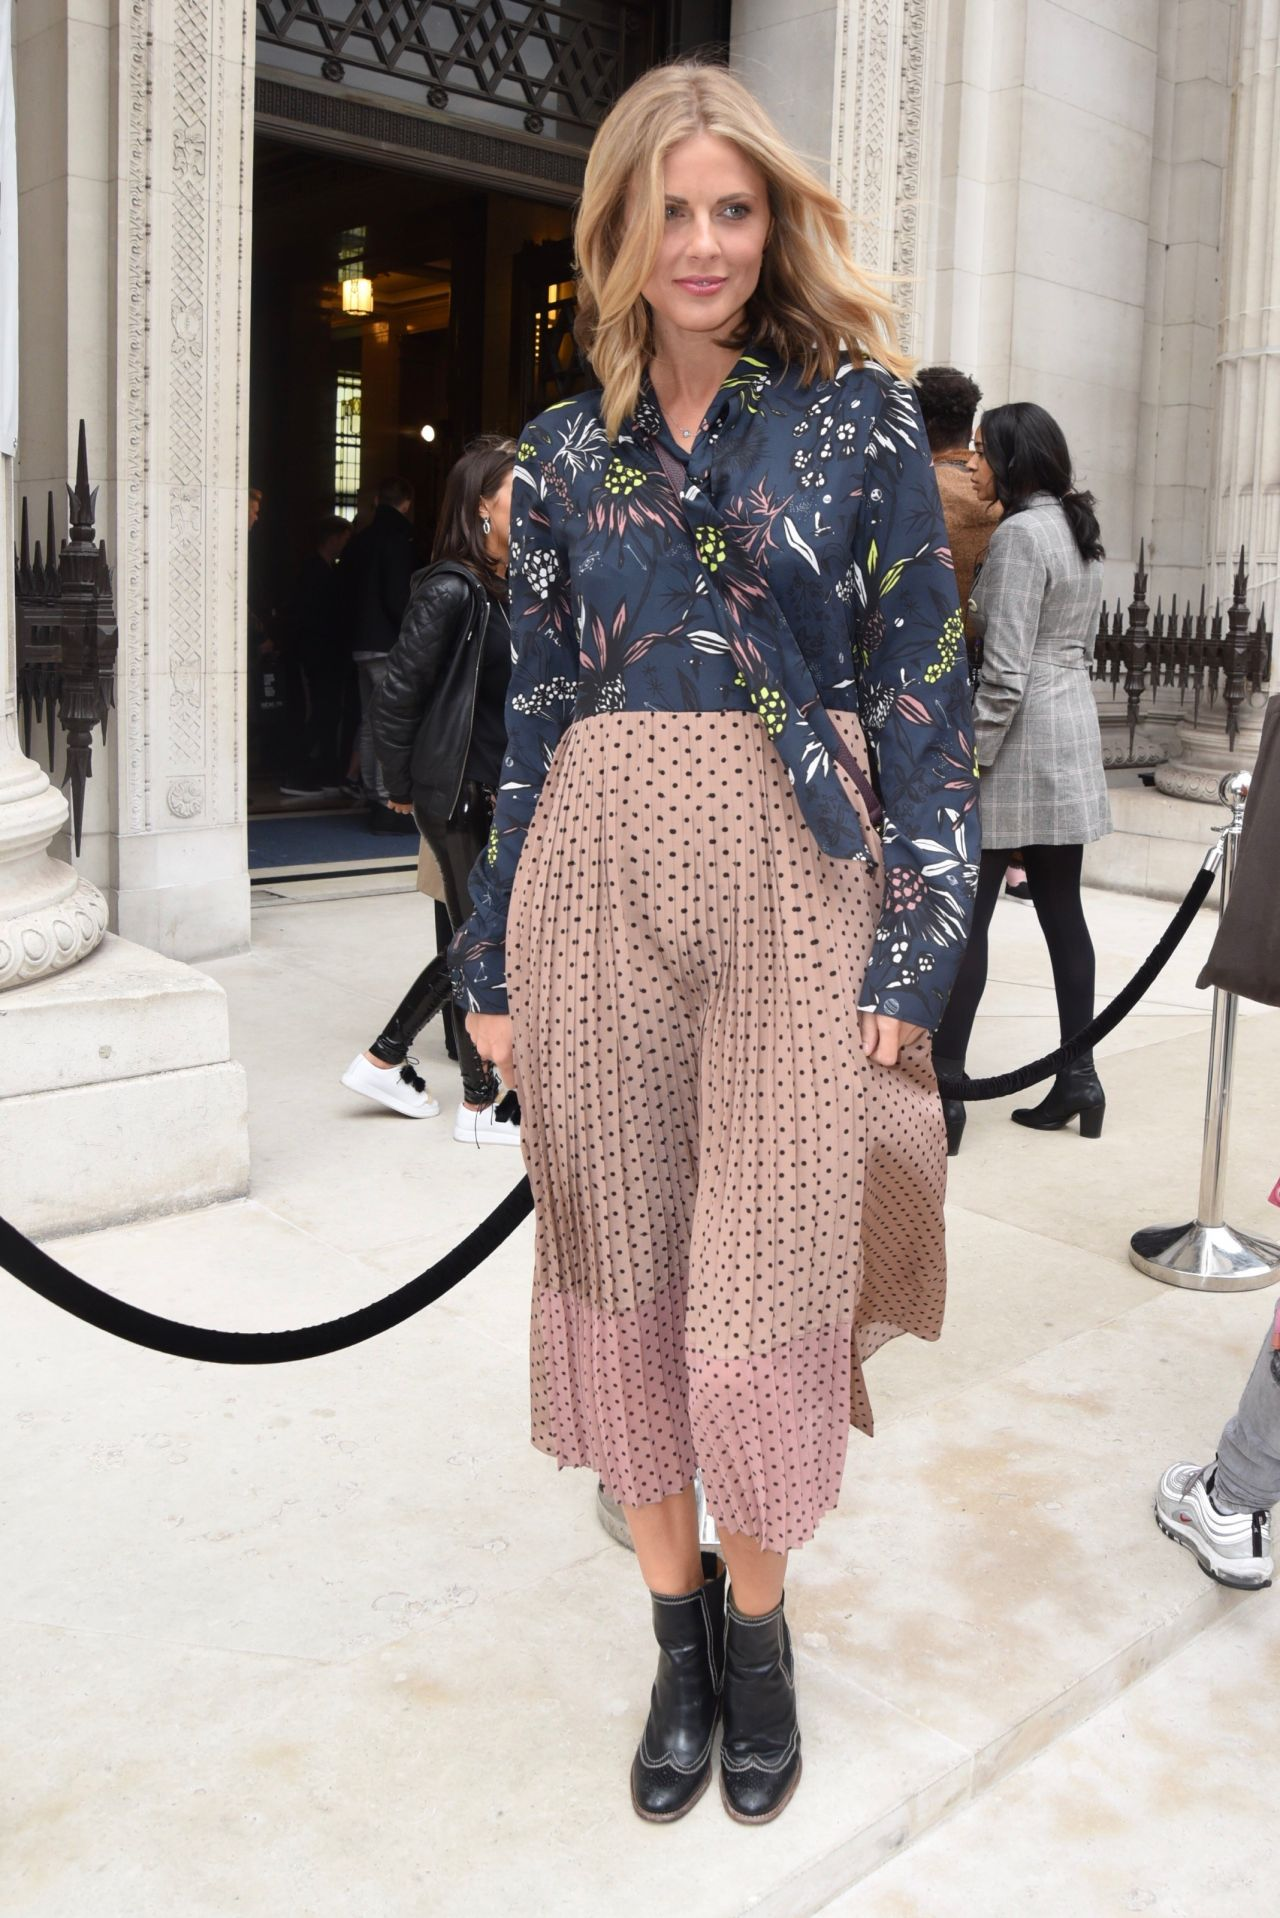 Donna air fashion scout one to watch show in london - 2019 year